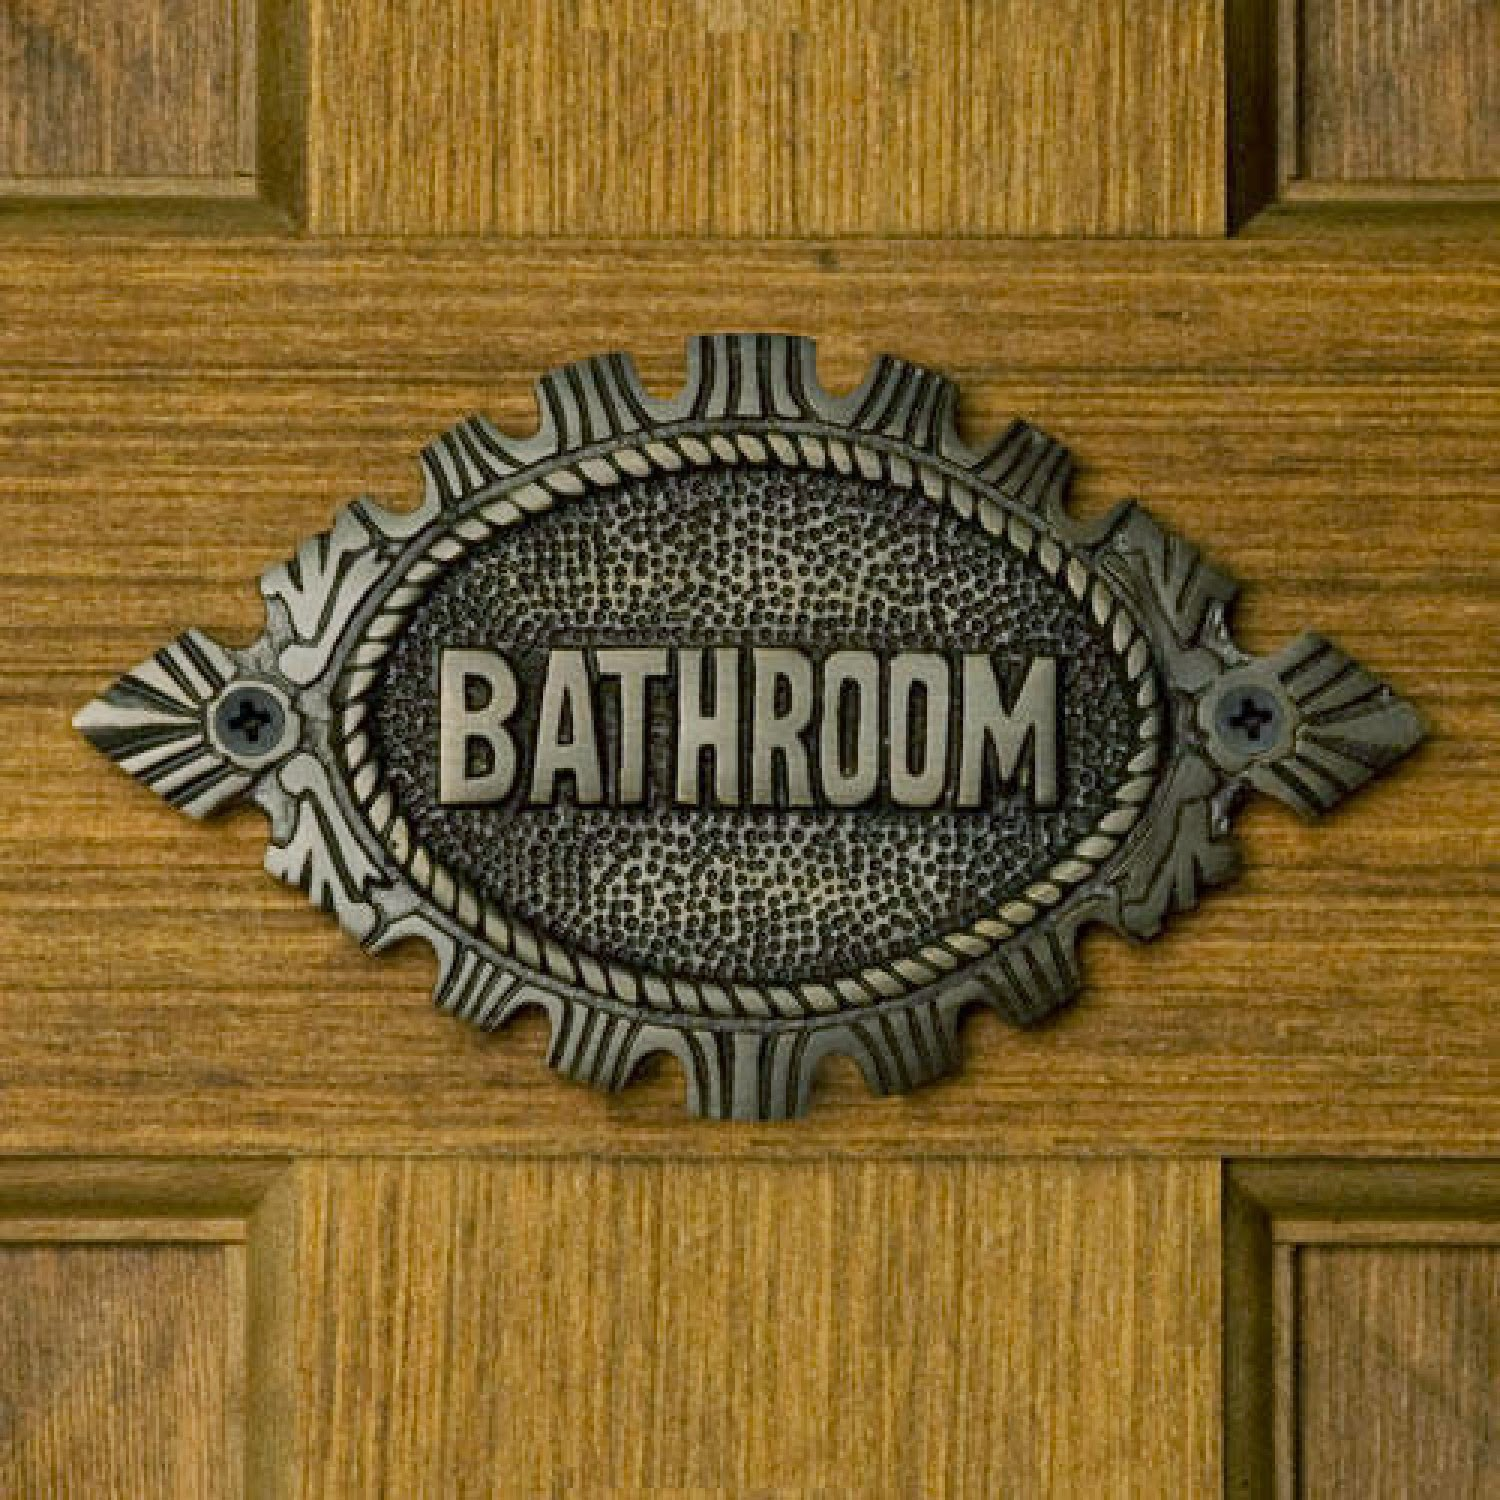 Click The Image To Enlarge And Enjoy The Antique Bathroom Sign Ideas.